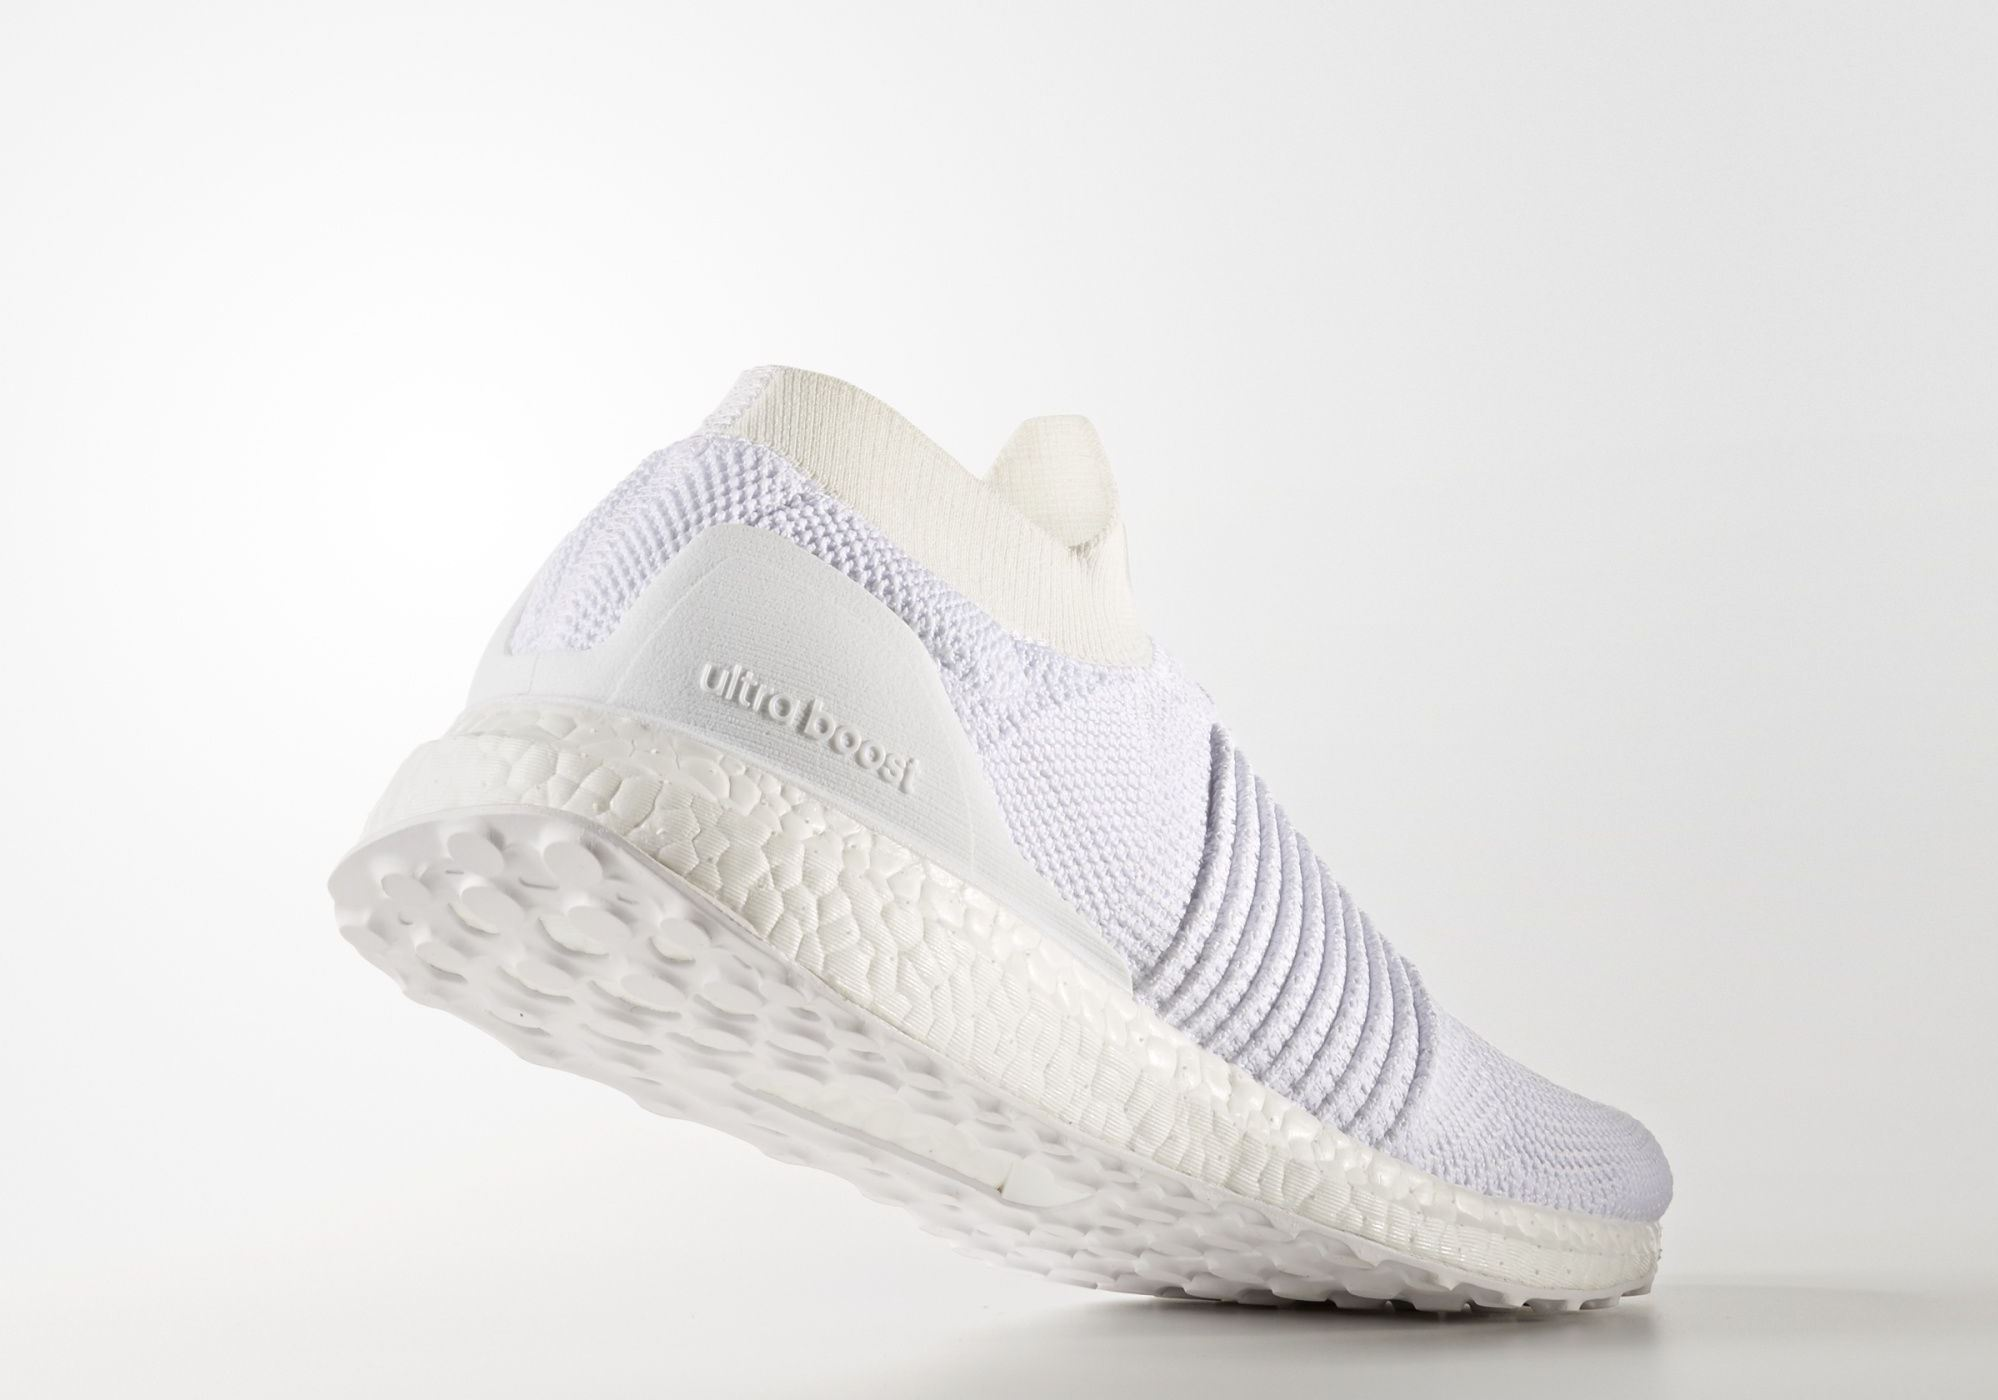 adidas Ultra Boost Laceless Mid Triple White – Back heel